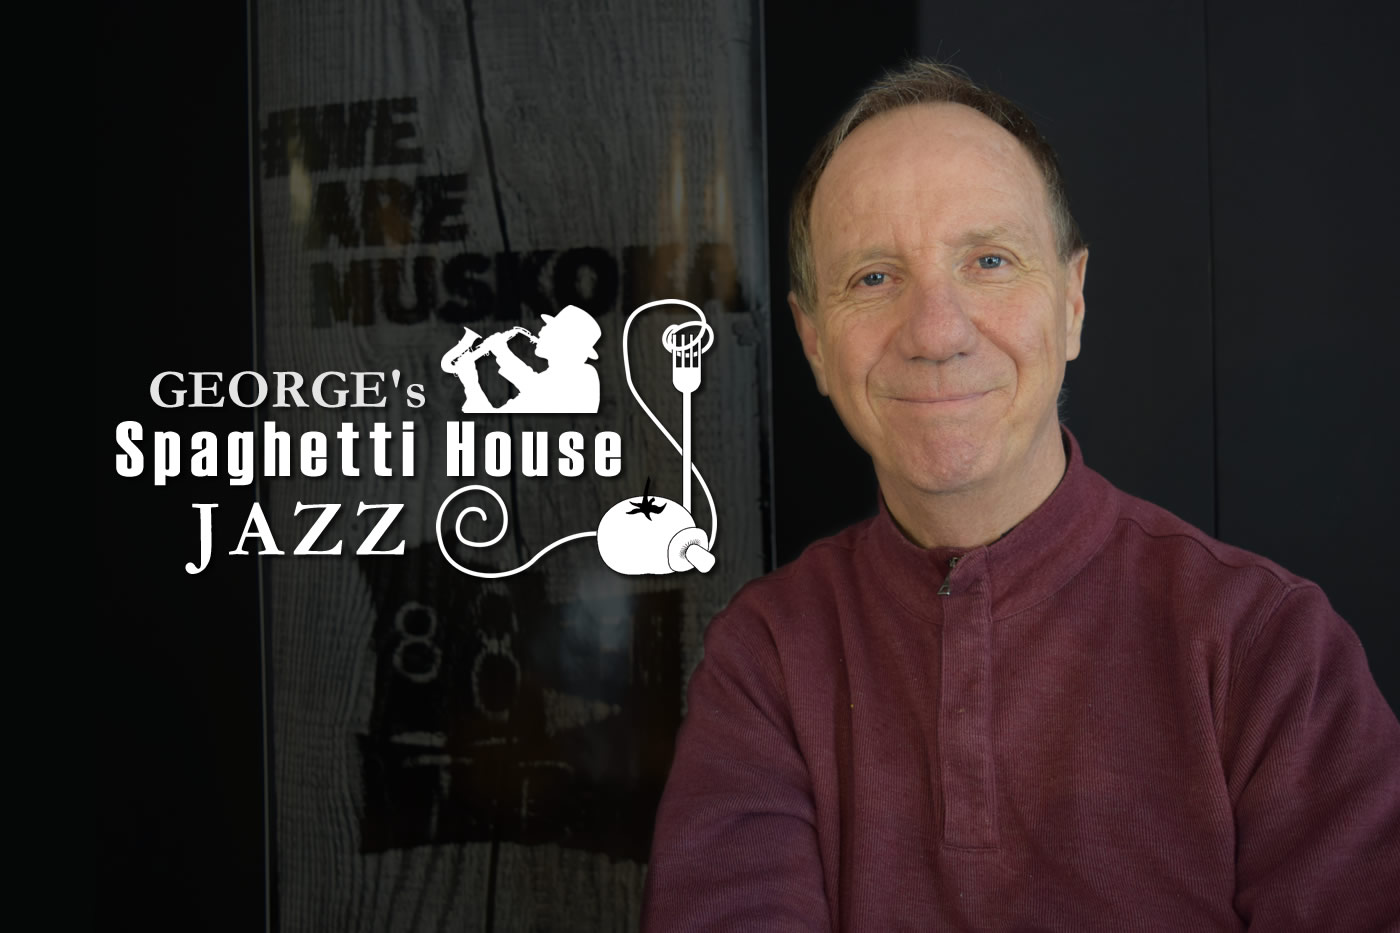 George's Spaghetti House Jazz